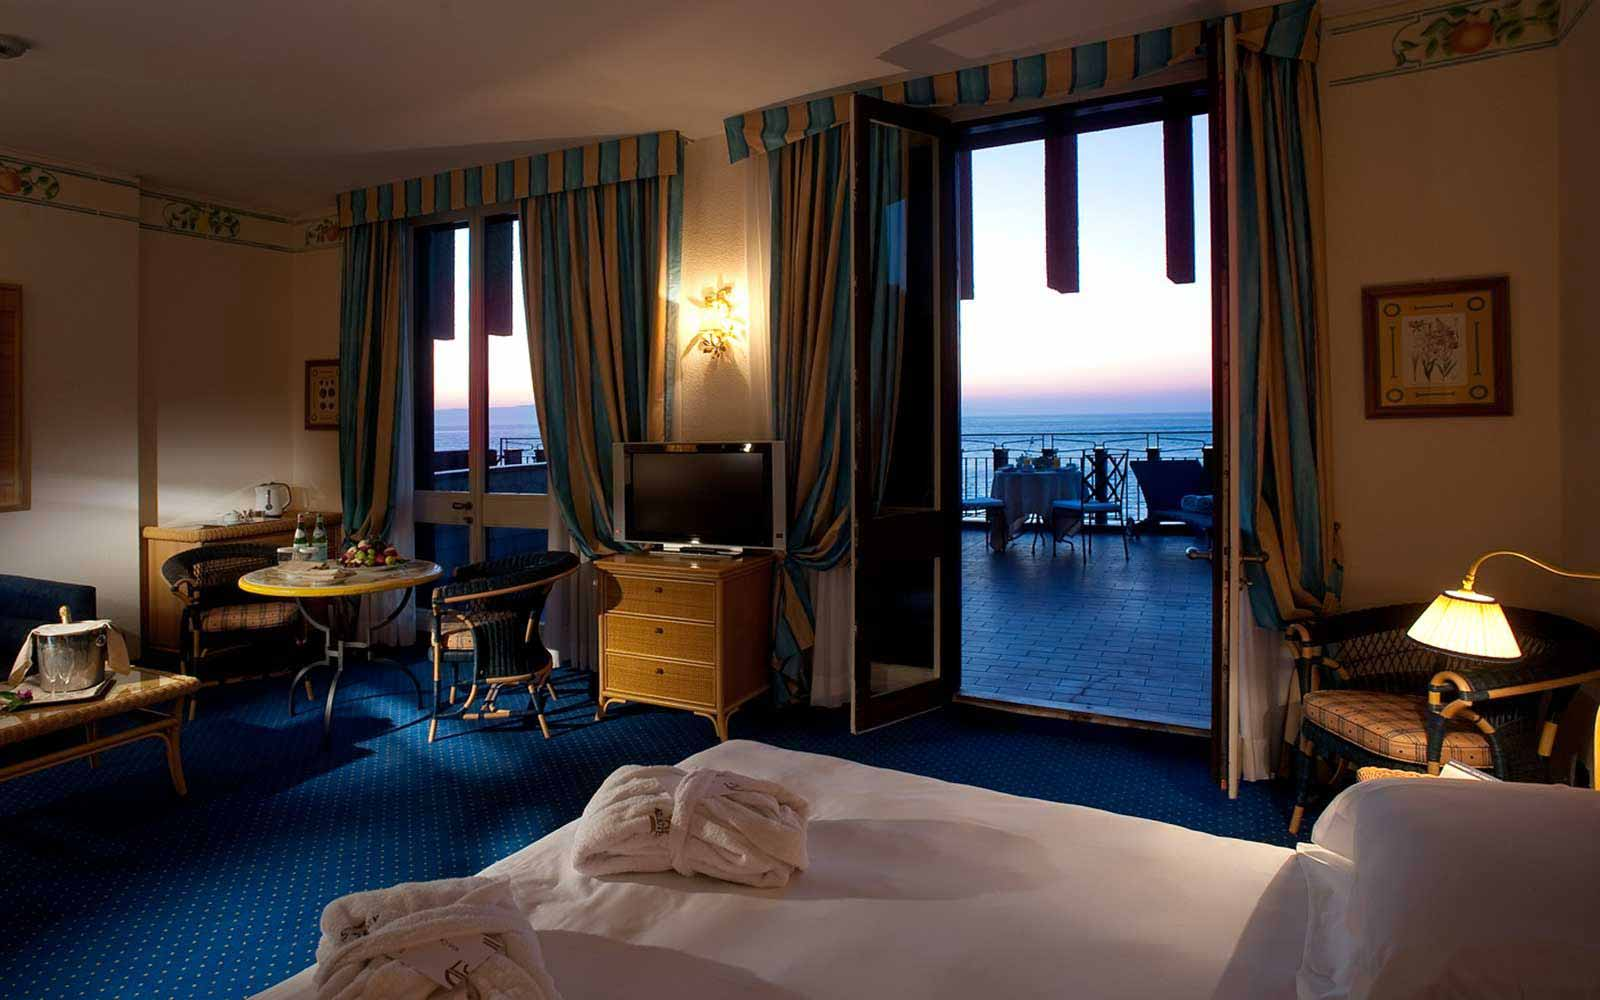 Suite at the Atahotel Capotaormina